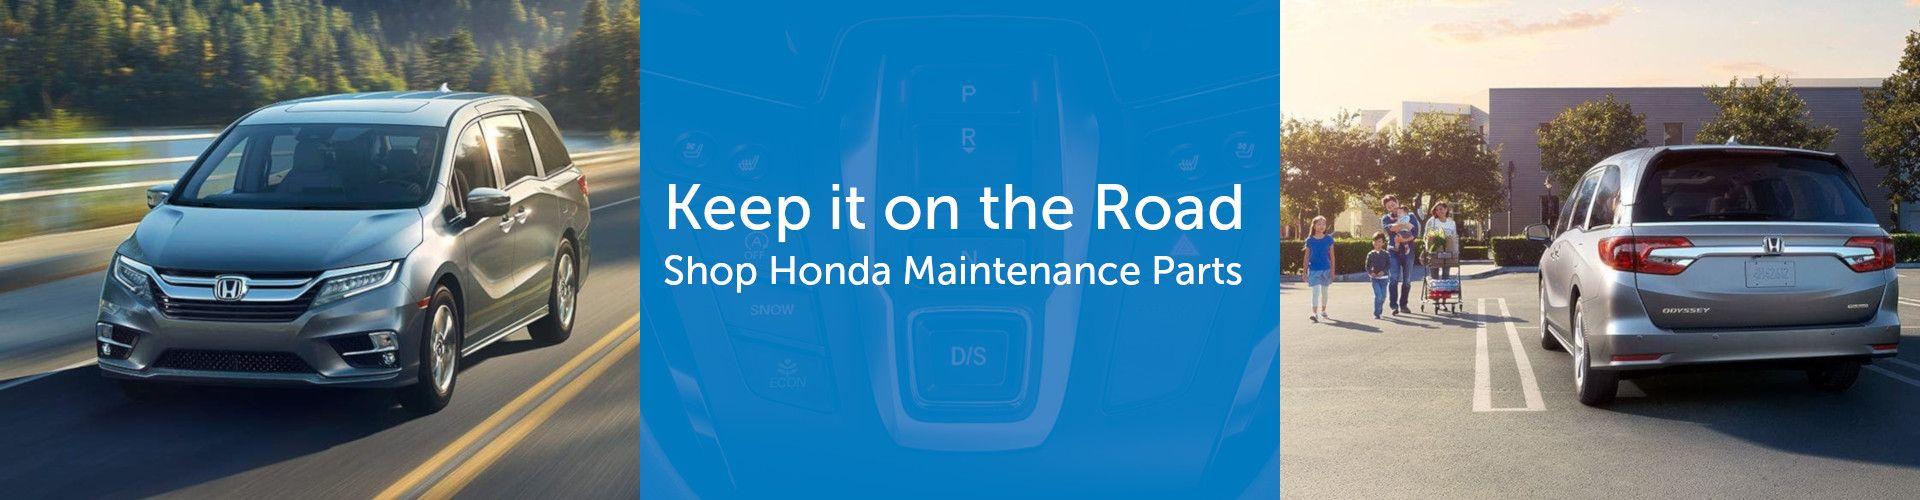 Shop Honda Maintenance Parts